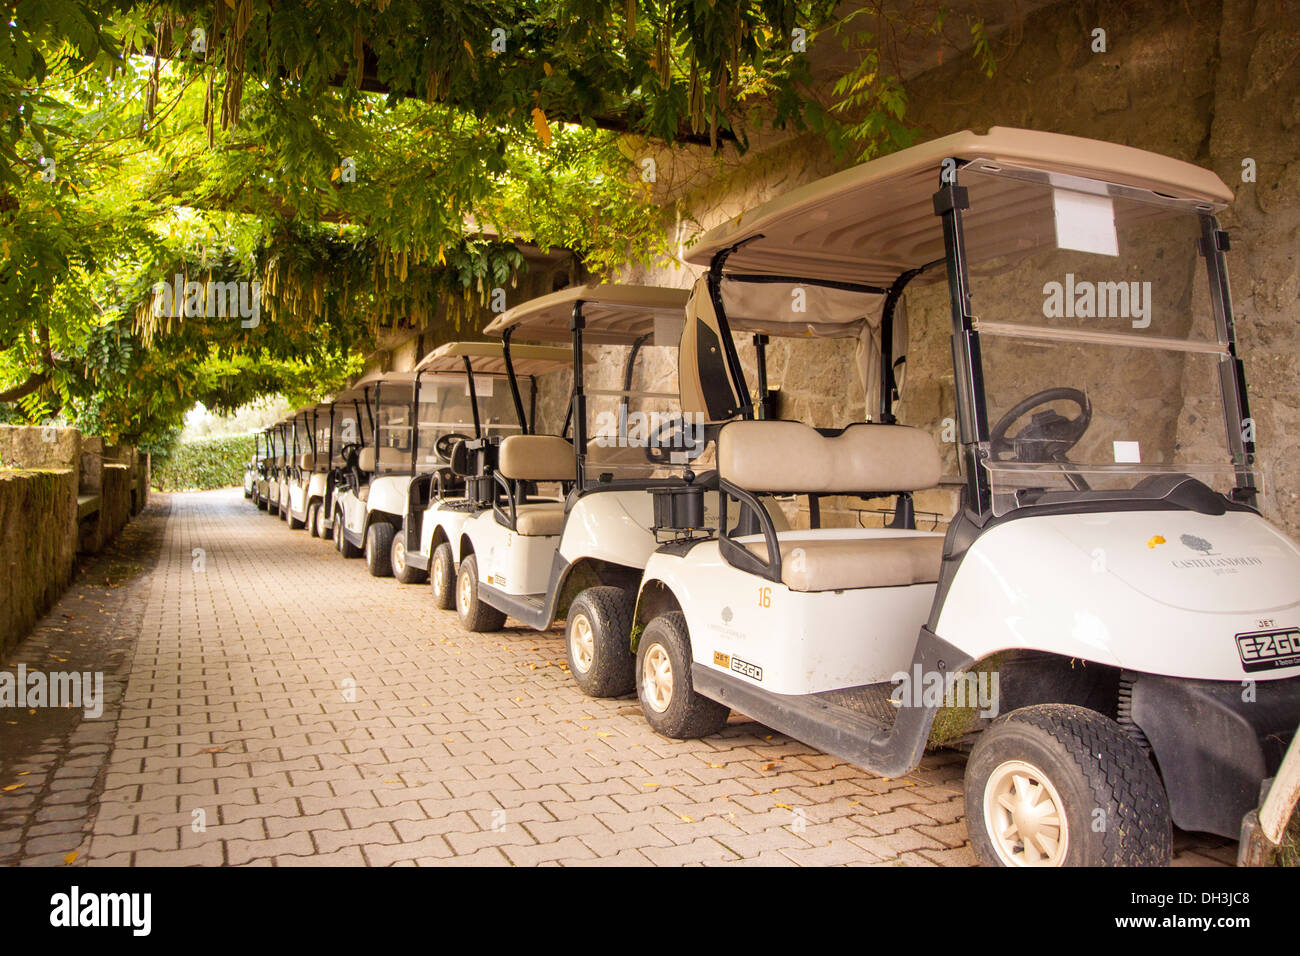 Golf carts in a line under overhanging vines. - Stock Image